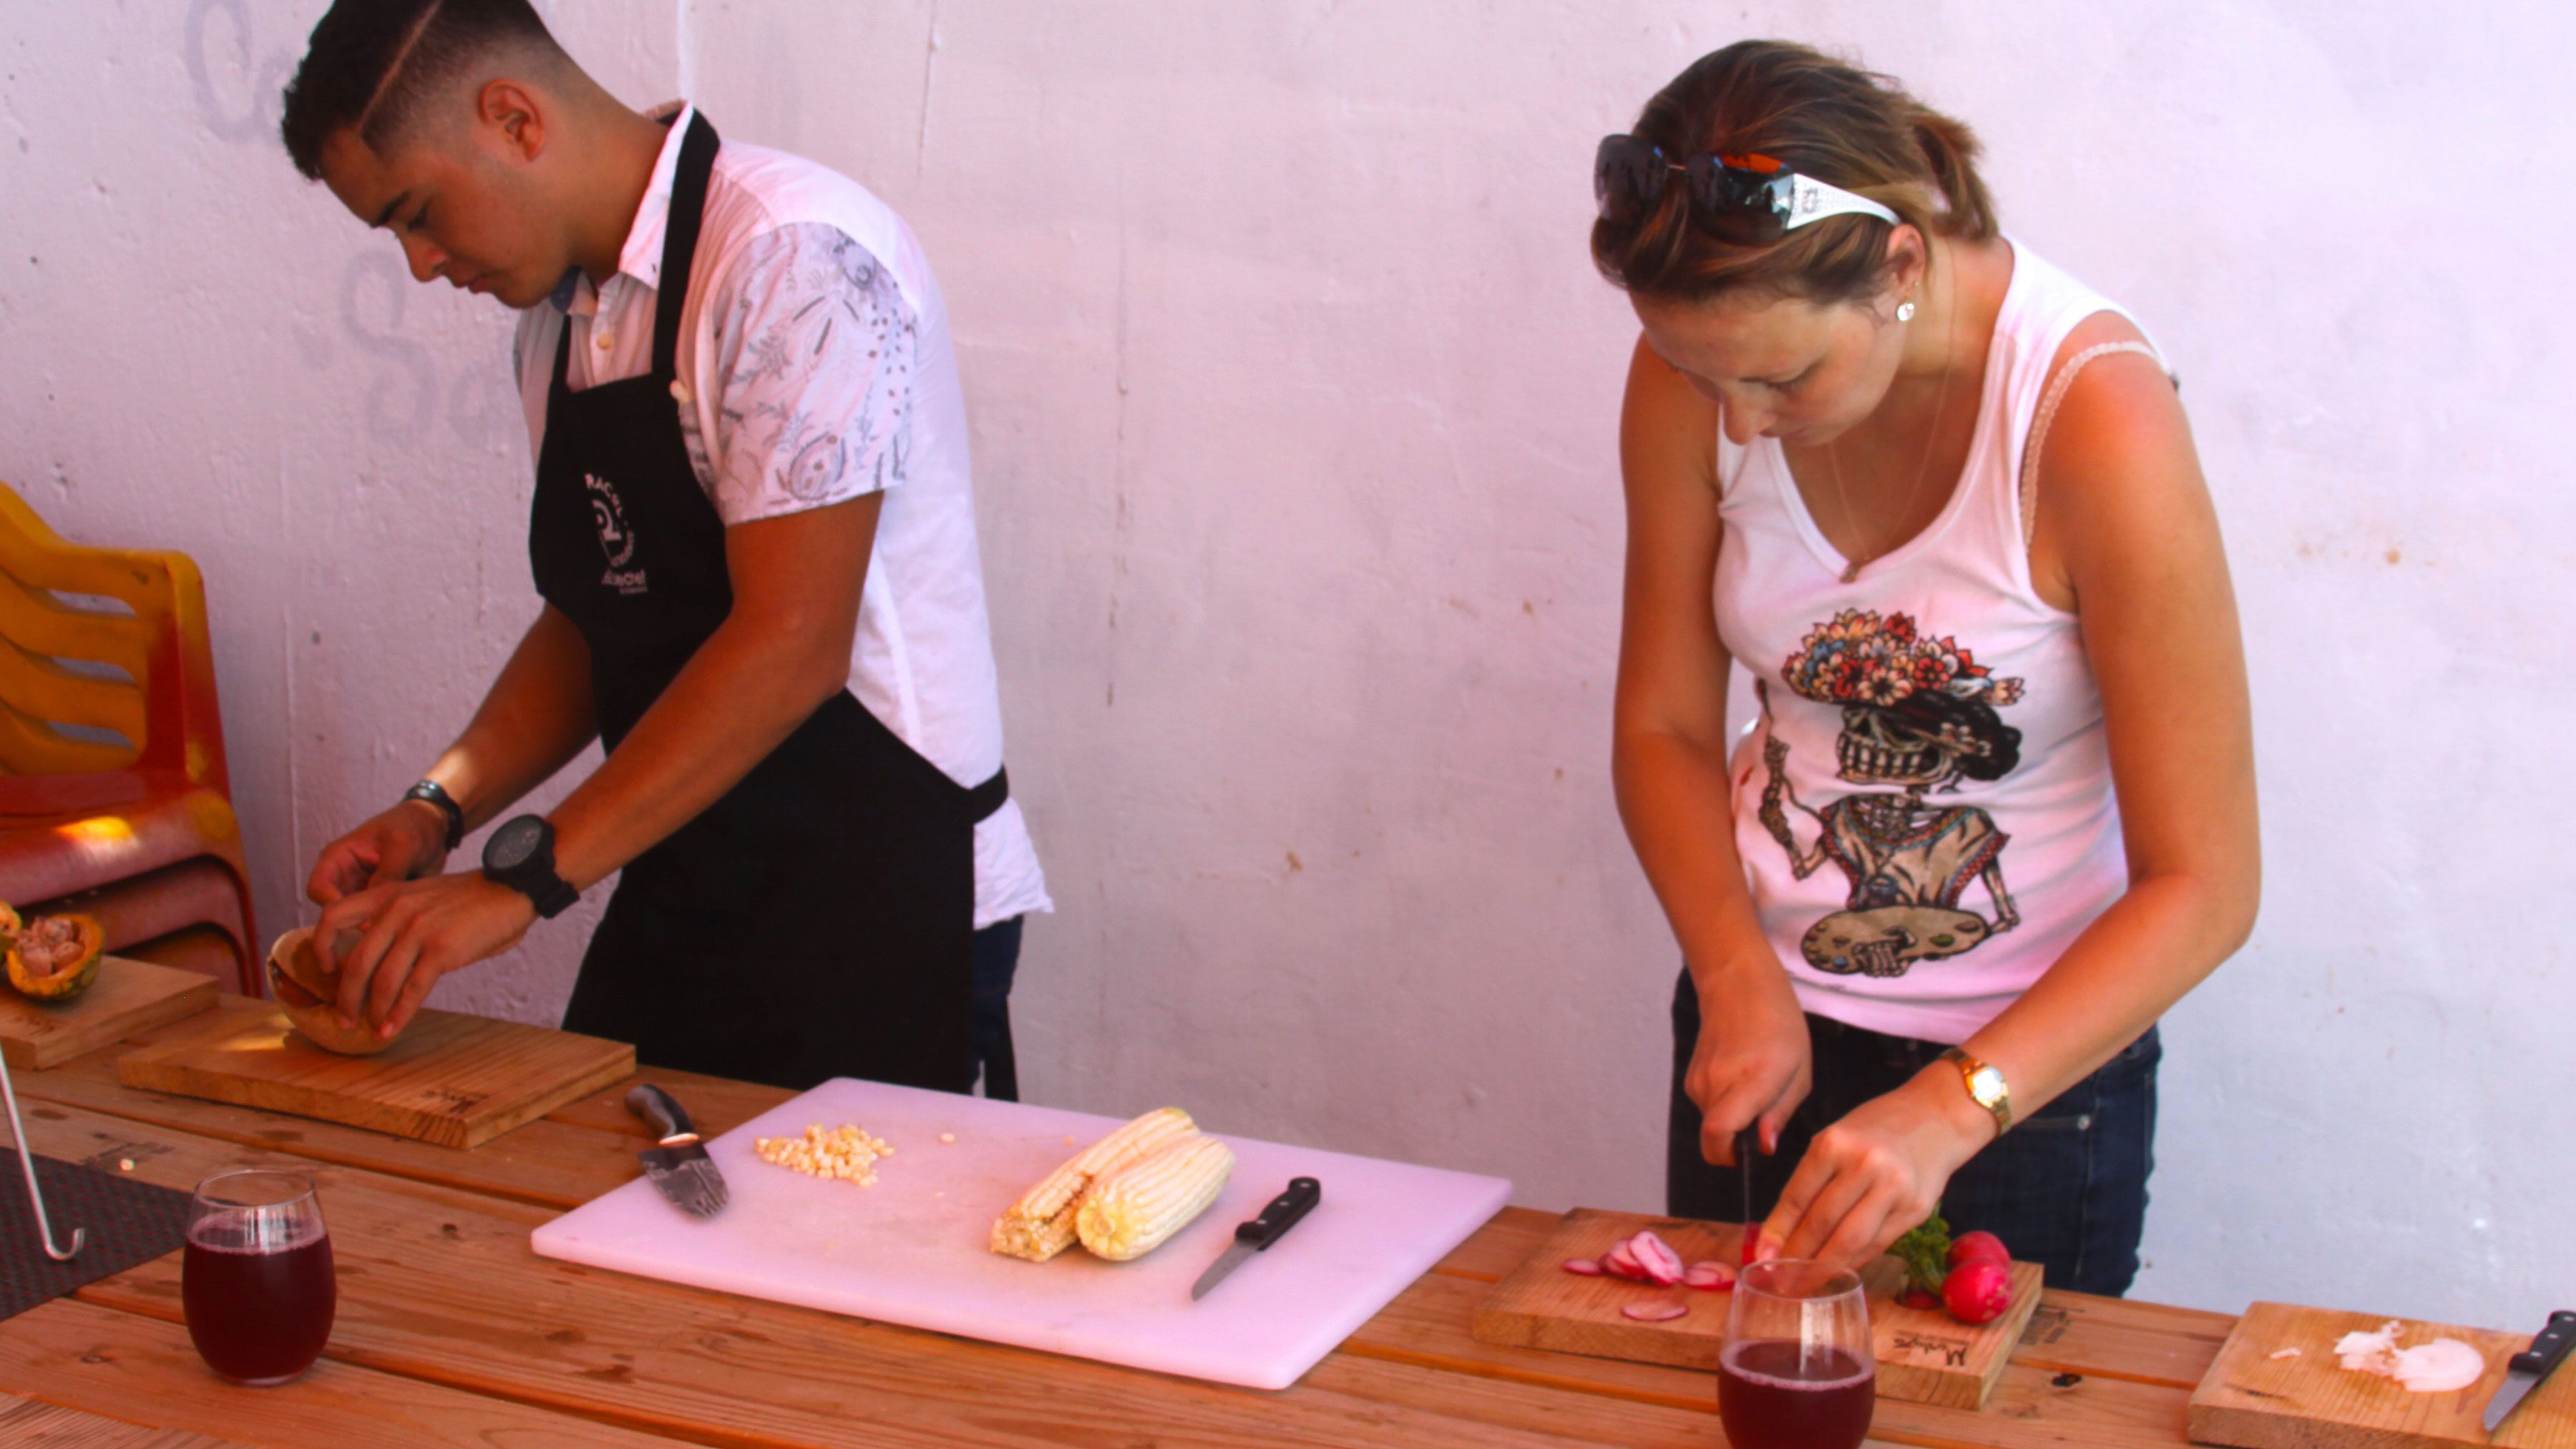 A woman and a chef chopping ingredients